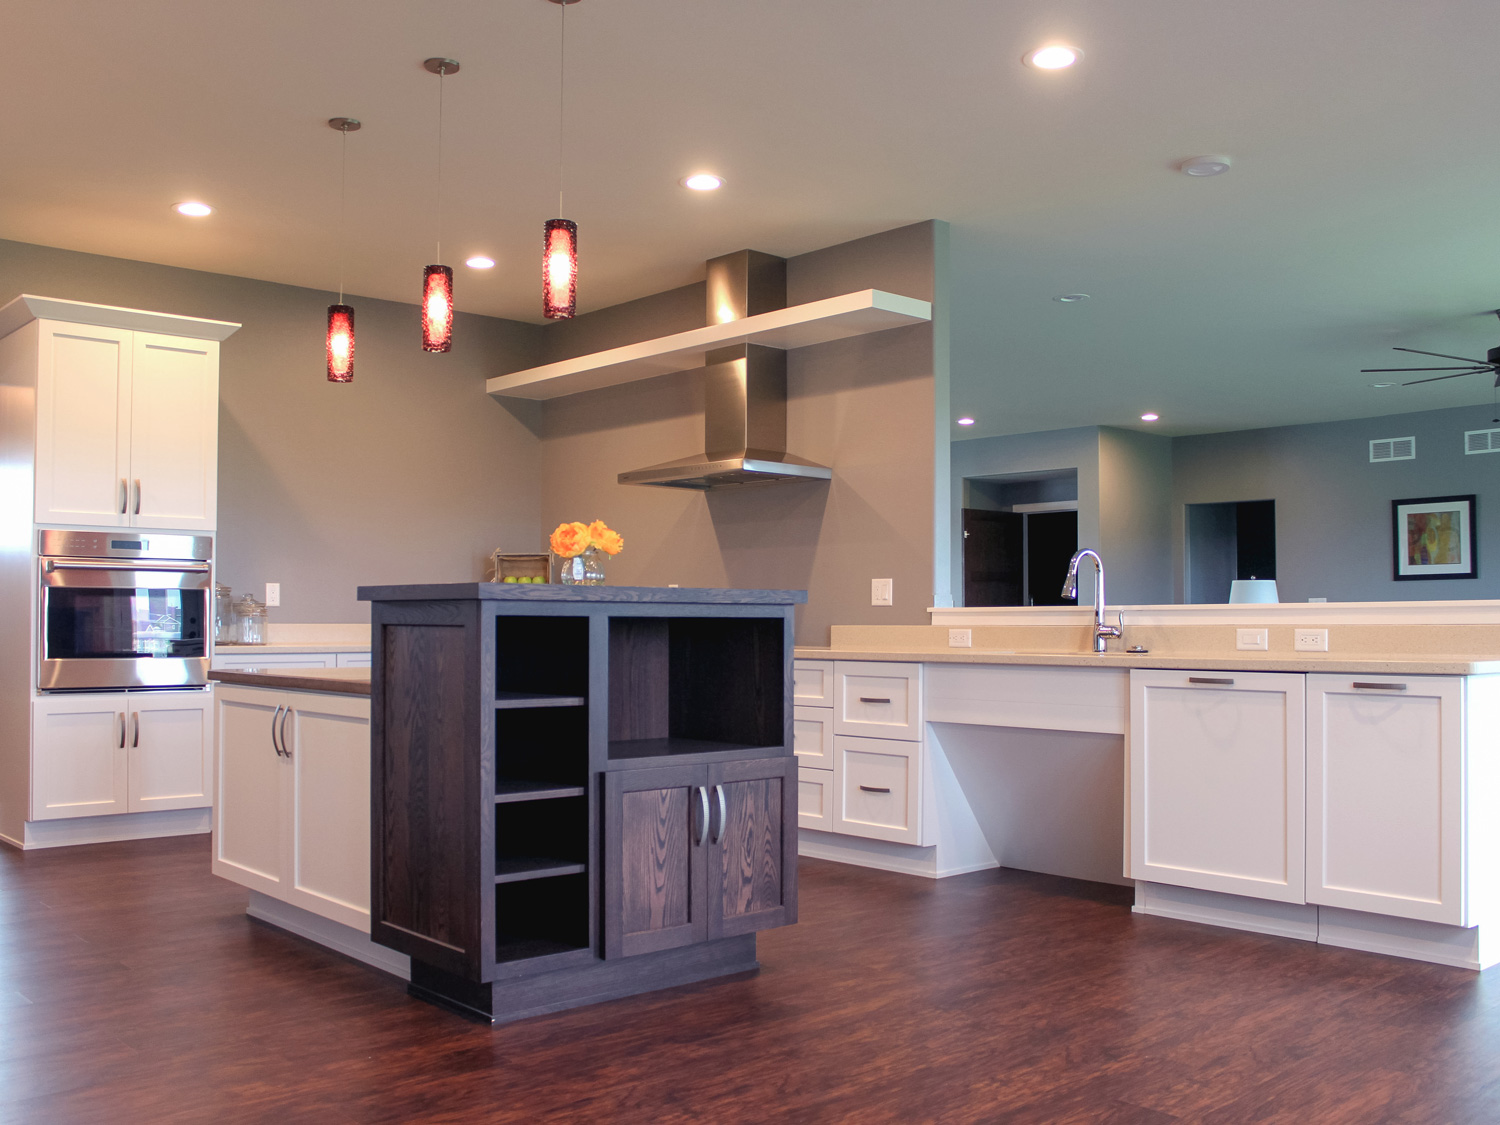 A Home With Universal Design — Degnan Design-Build-Remodel